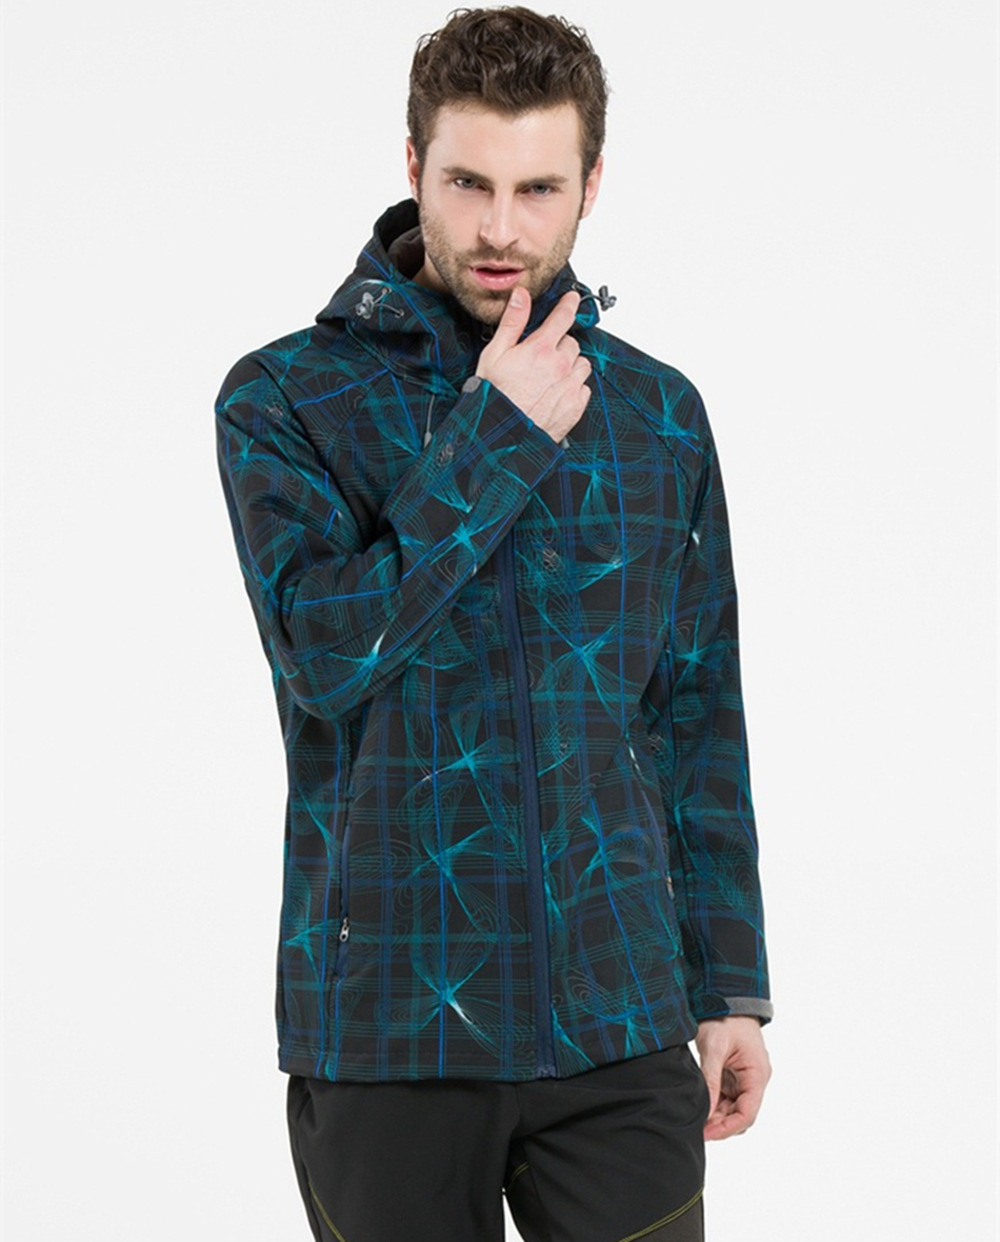 Men jacket jackets fishing new hiking outdoor sport camping softshell jacket thermal windproof autumn and waterproof